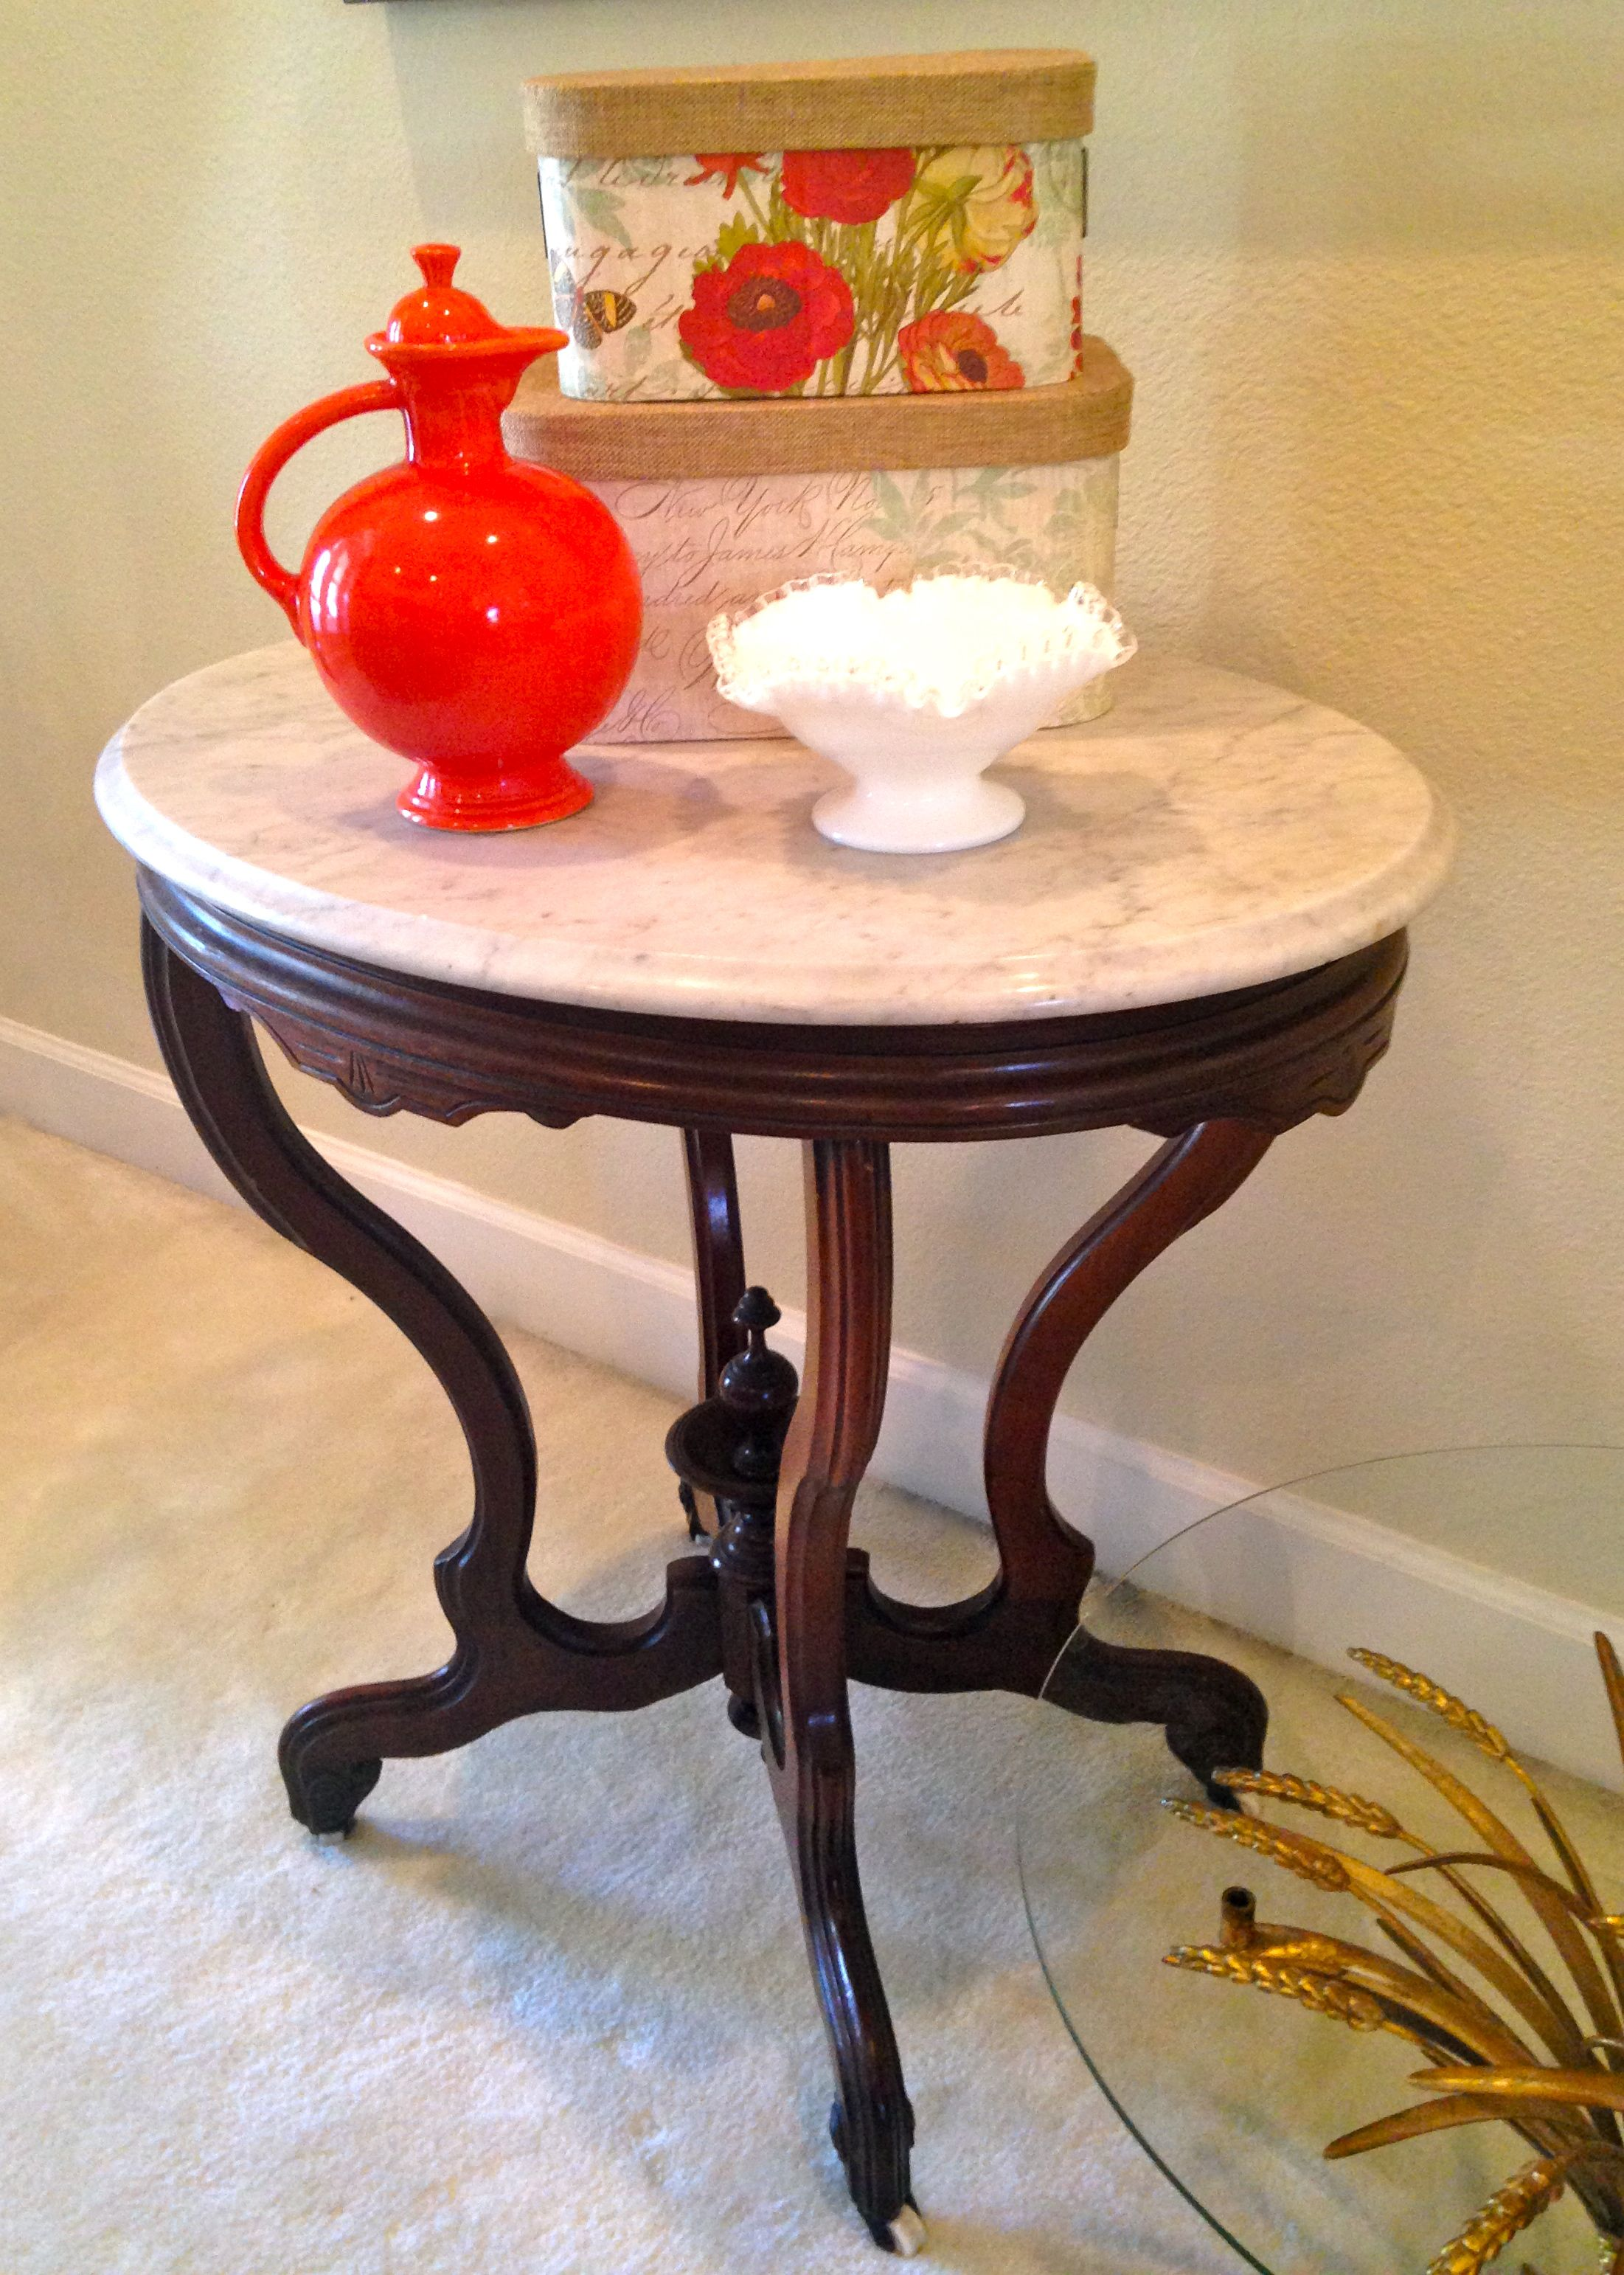 Auction company 751 walnut victorian marble top parlor table ca 1870 - Antique Marble Top Table With Ceramic Wheels 259 Sold